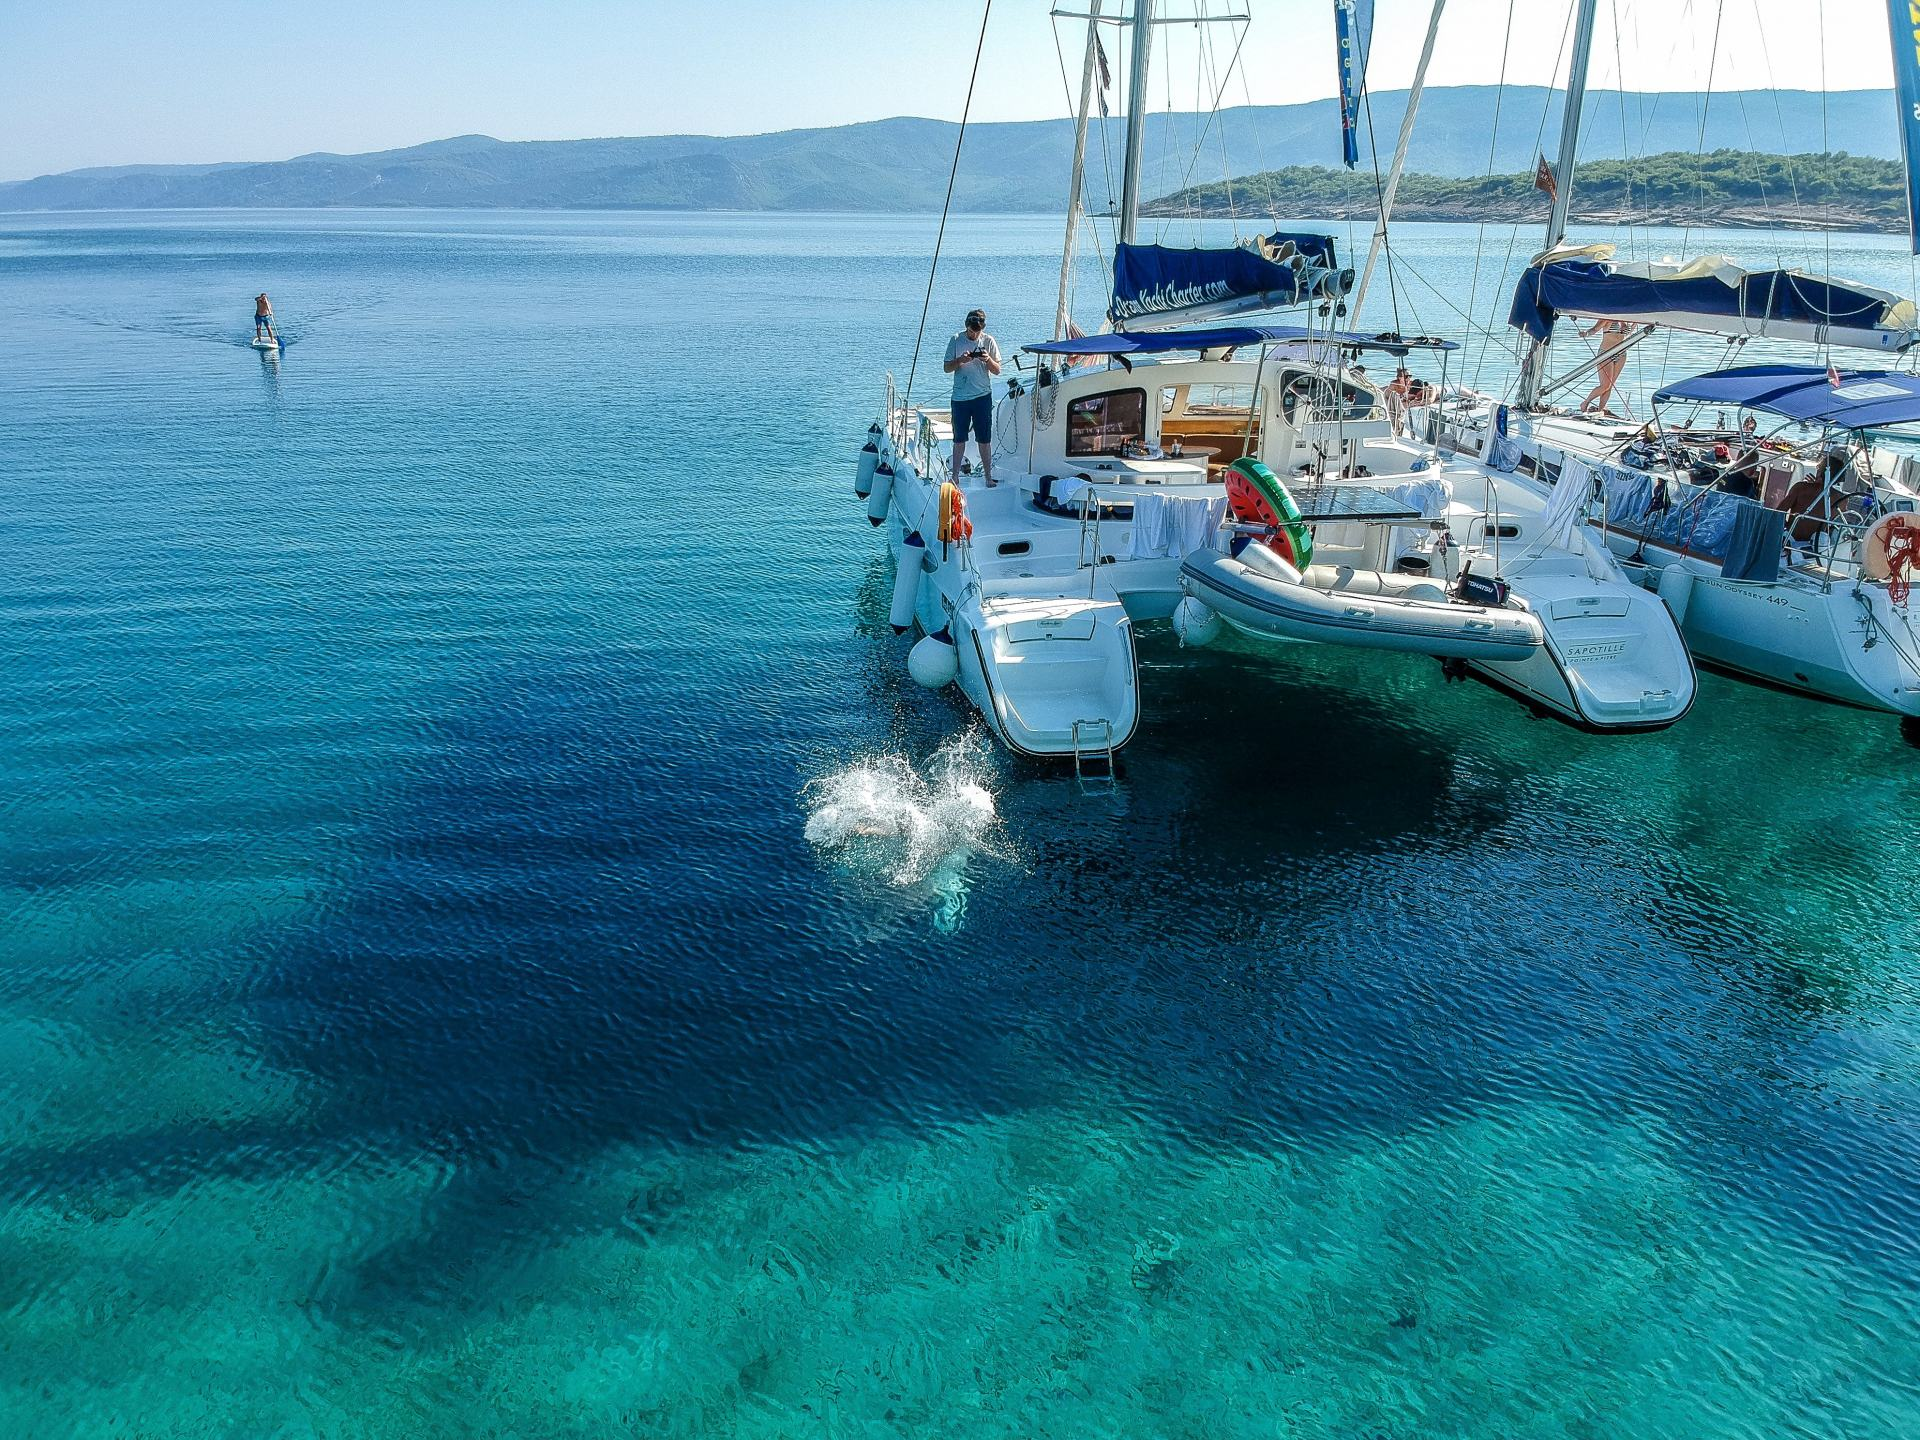 visit croatia to go swimming in clear water